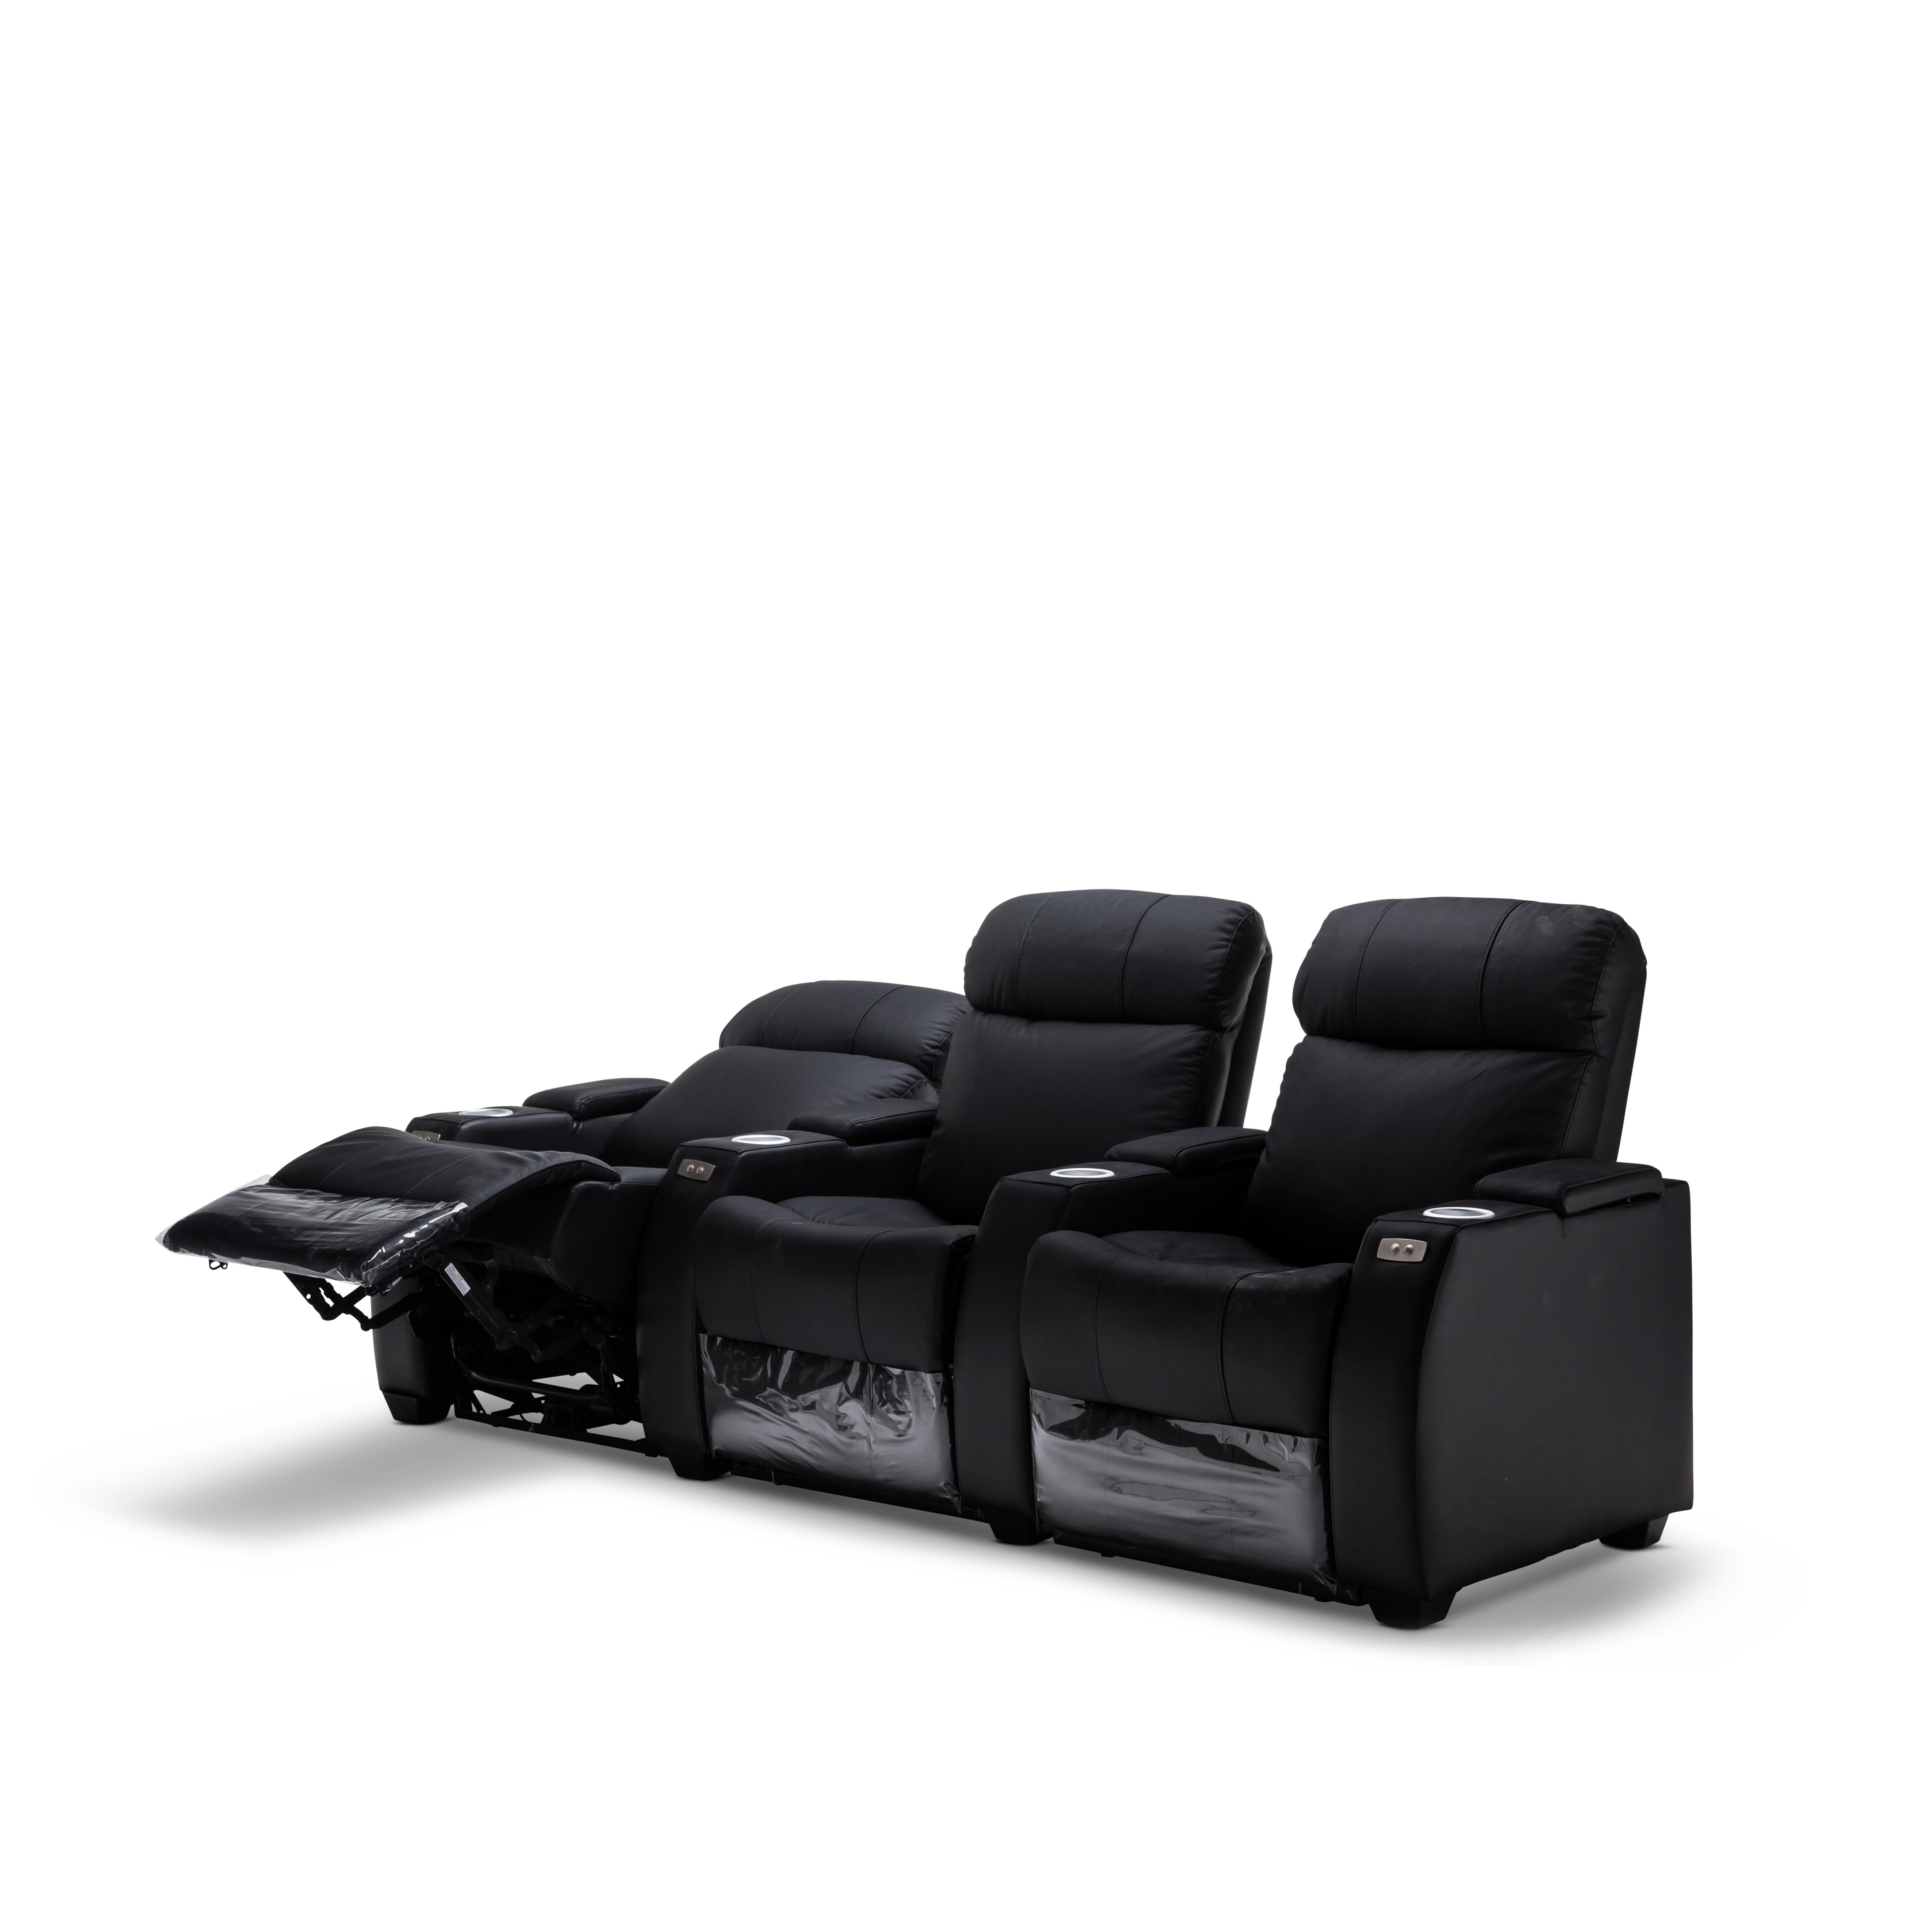 2 Seater Recliner Lounge Anna Black Leather Electric Recliner Home Theatre Lounge